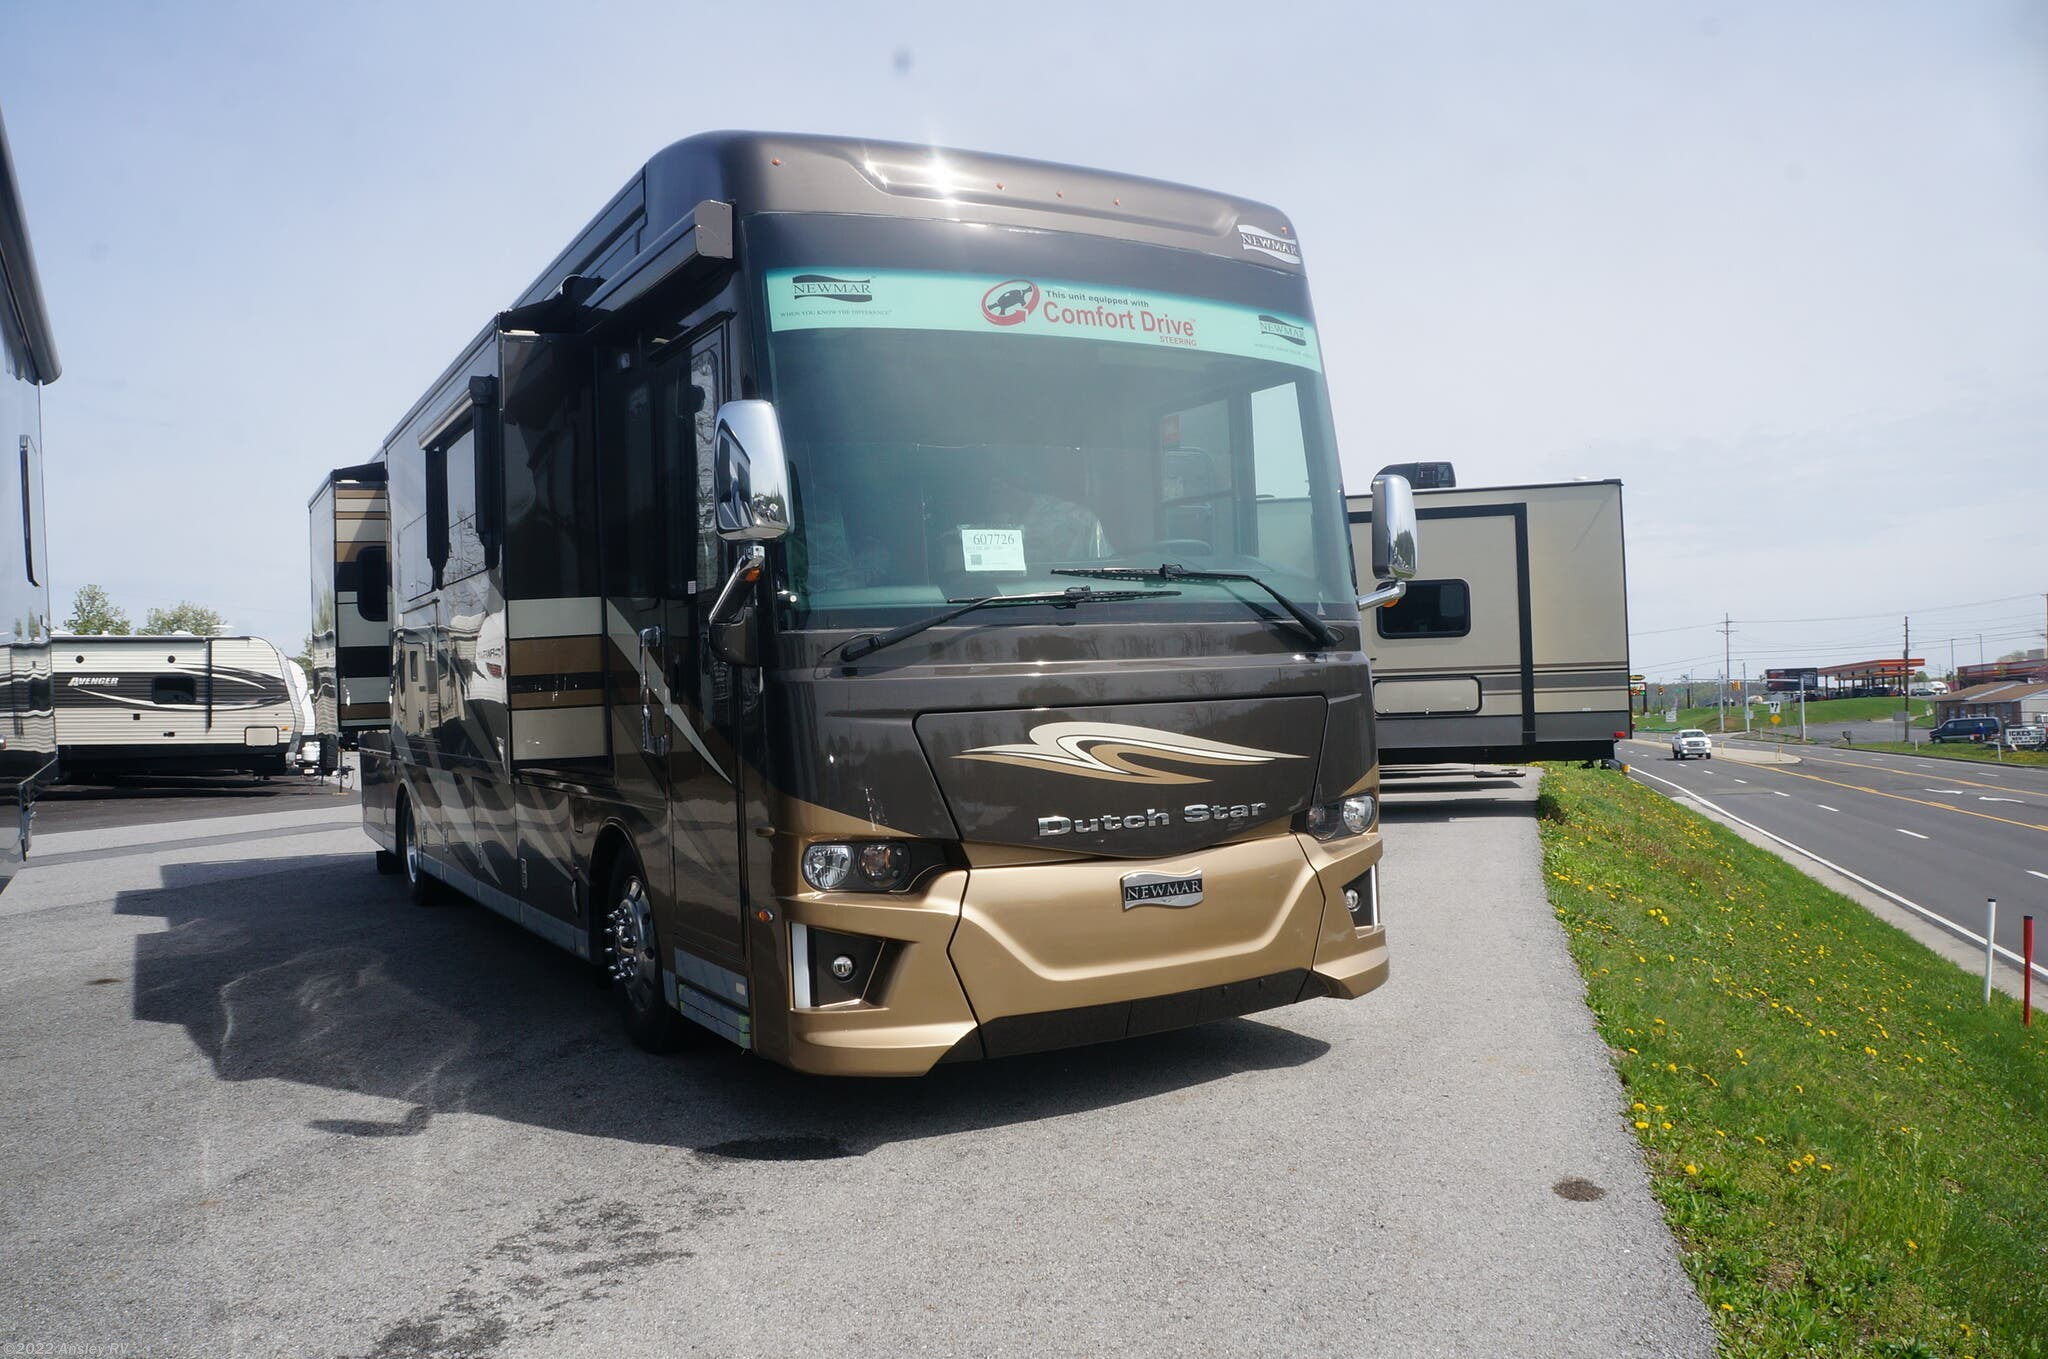 2019 Newmar RV Dutch Star 3736 for Sale in Duncansville, PA 16635   on